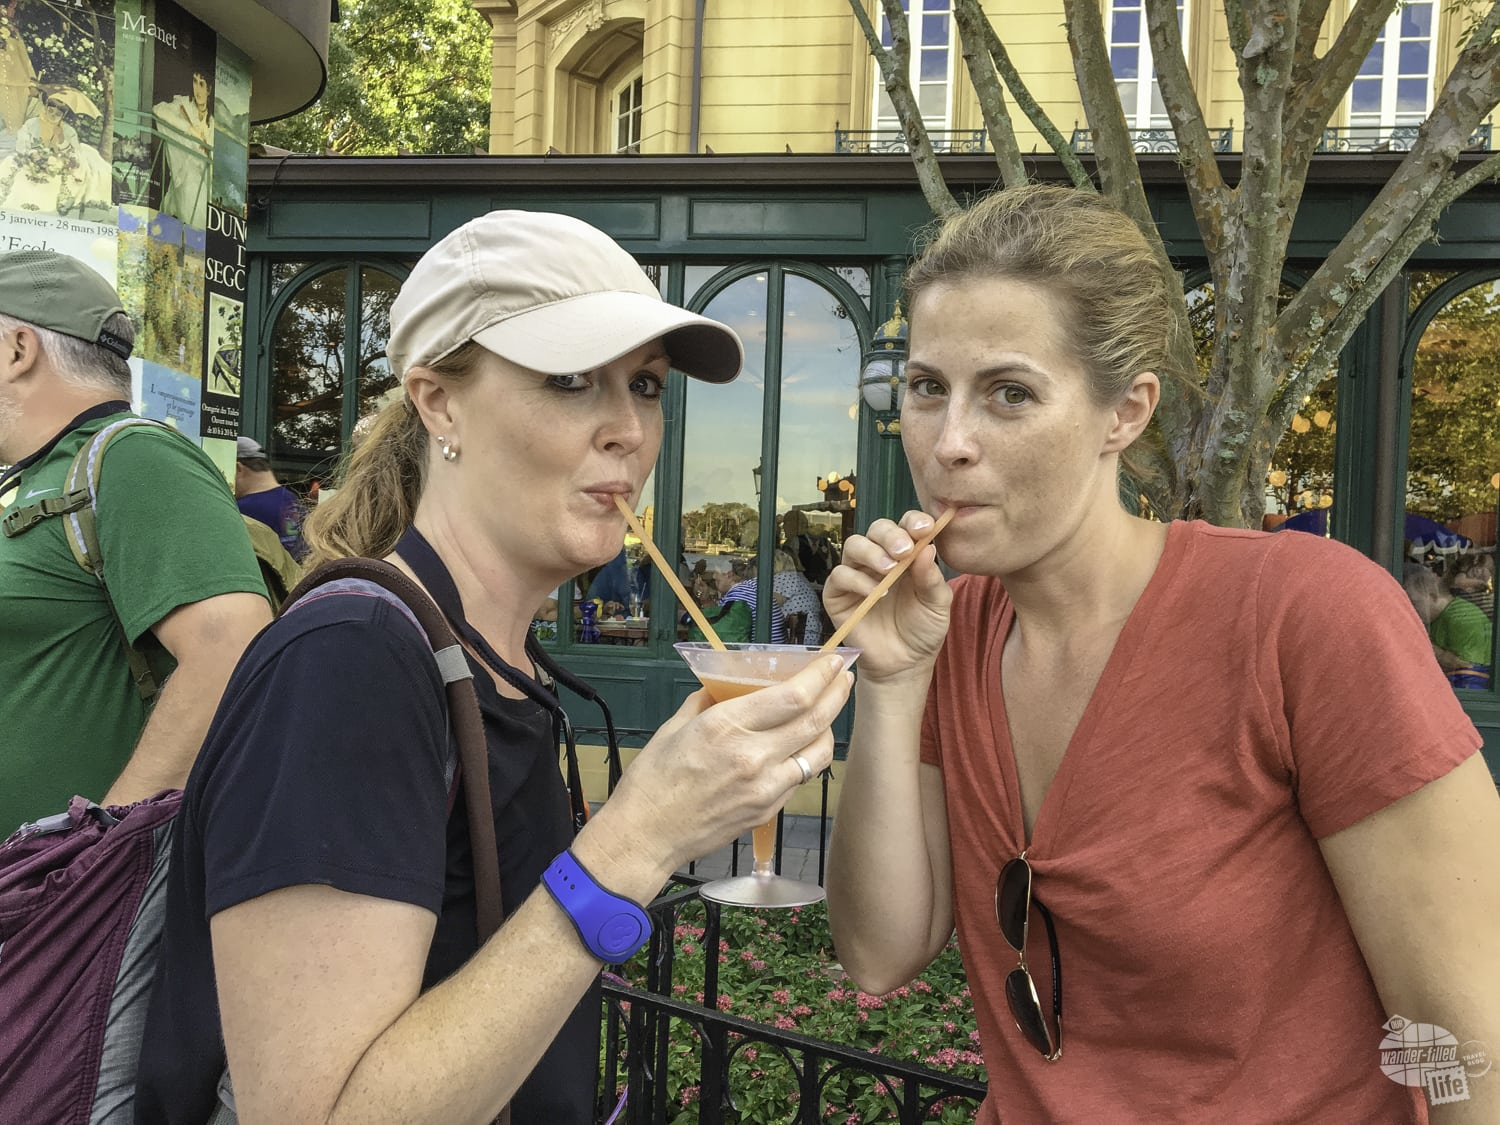 Sharing a drink at the Food & Wine Festival.